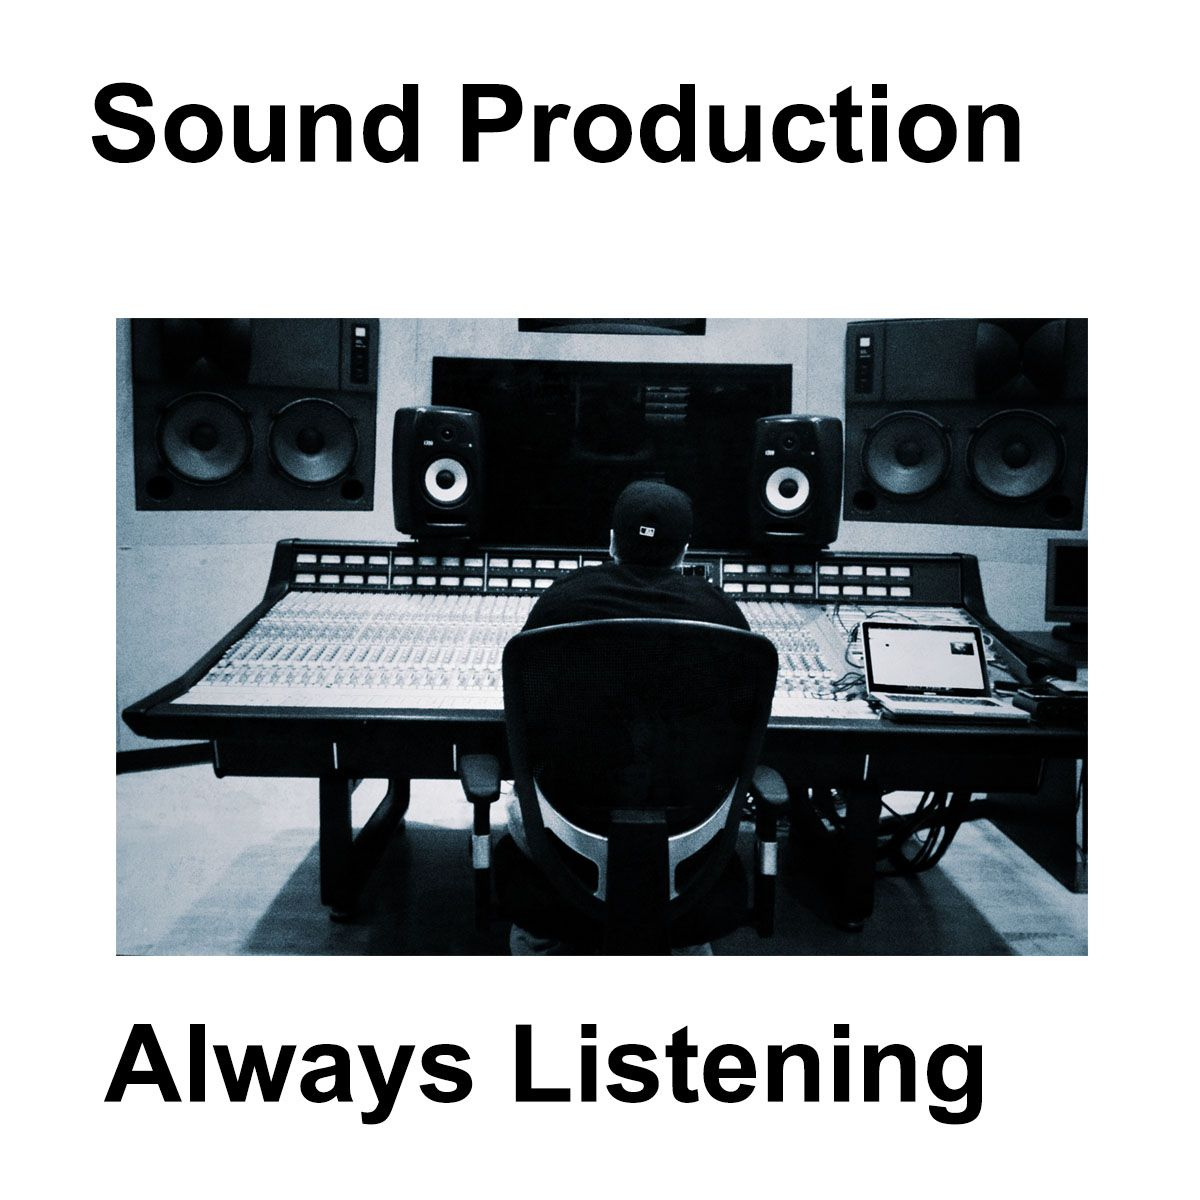 Sound Production is what sent me down the path of